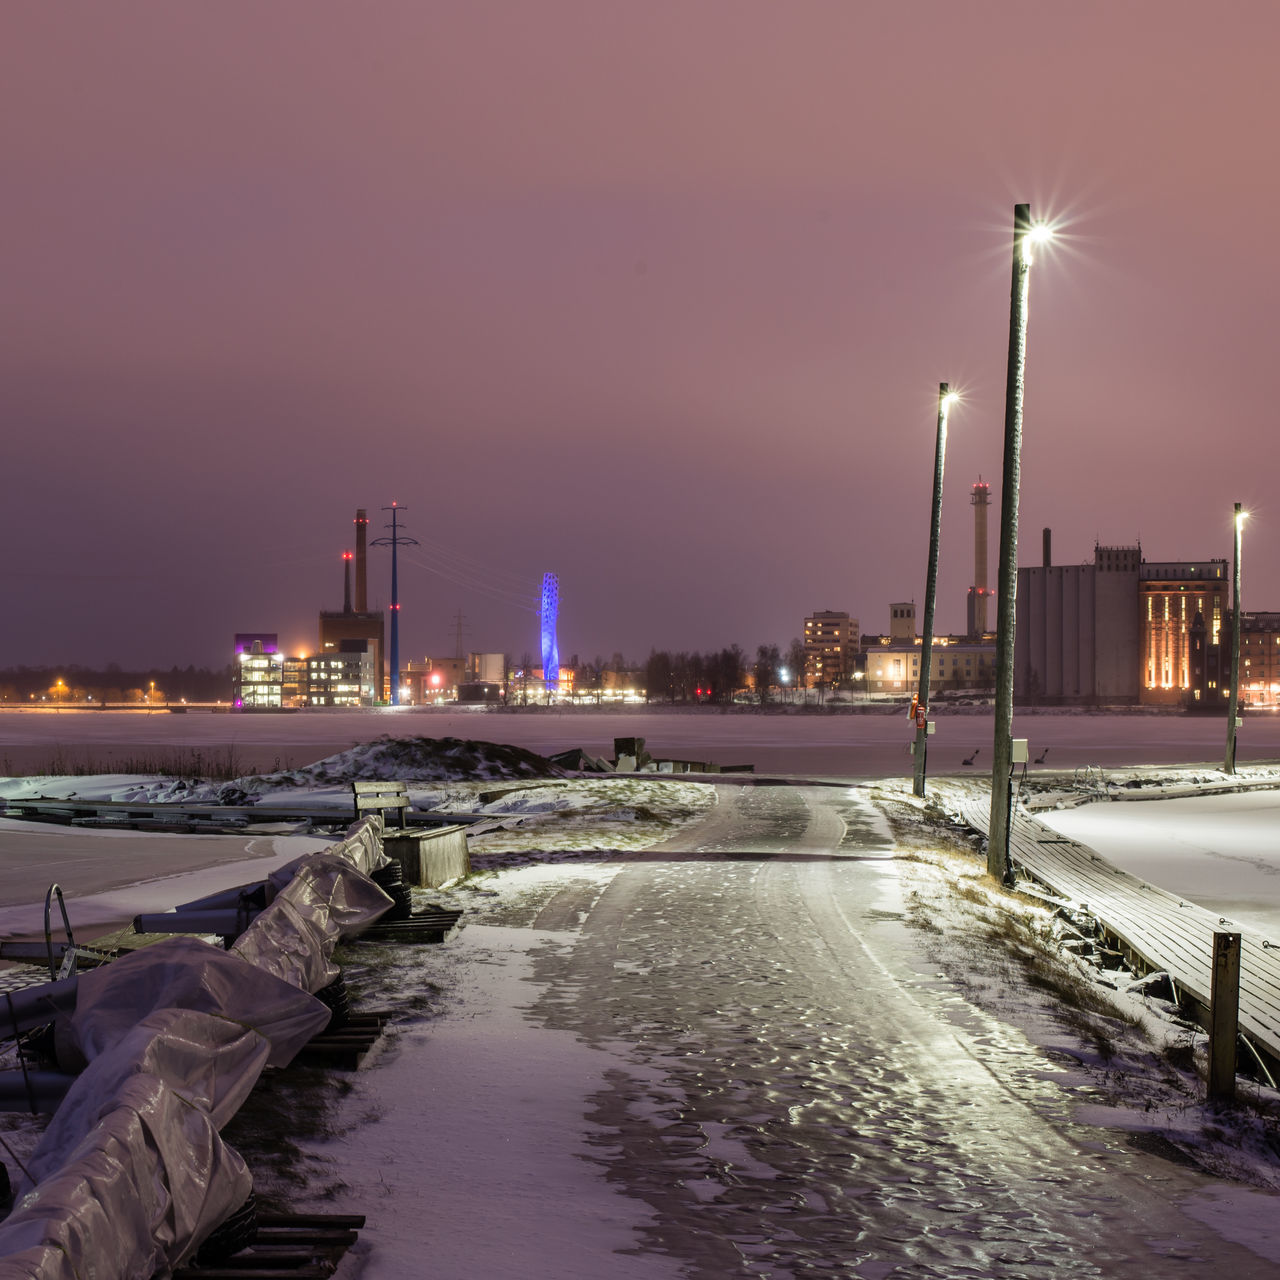 Wintery cityscape of Vaasa, Finland, as seen from a marina at Vaskiluoto island Architecture City Cityscape Cold Temperature Electricity Pylon Ice Landscape Night No People Power Plant Purple Sky Pylons Slippery Squarecrop Tower Urban Skyline Vaasa Winter